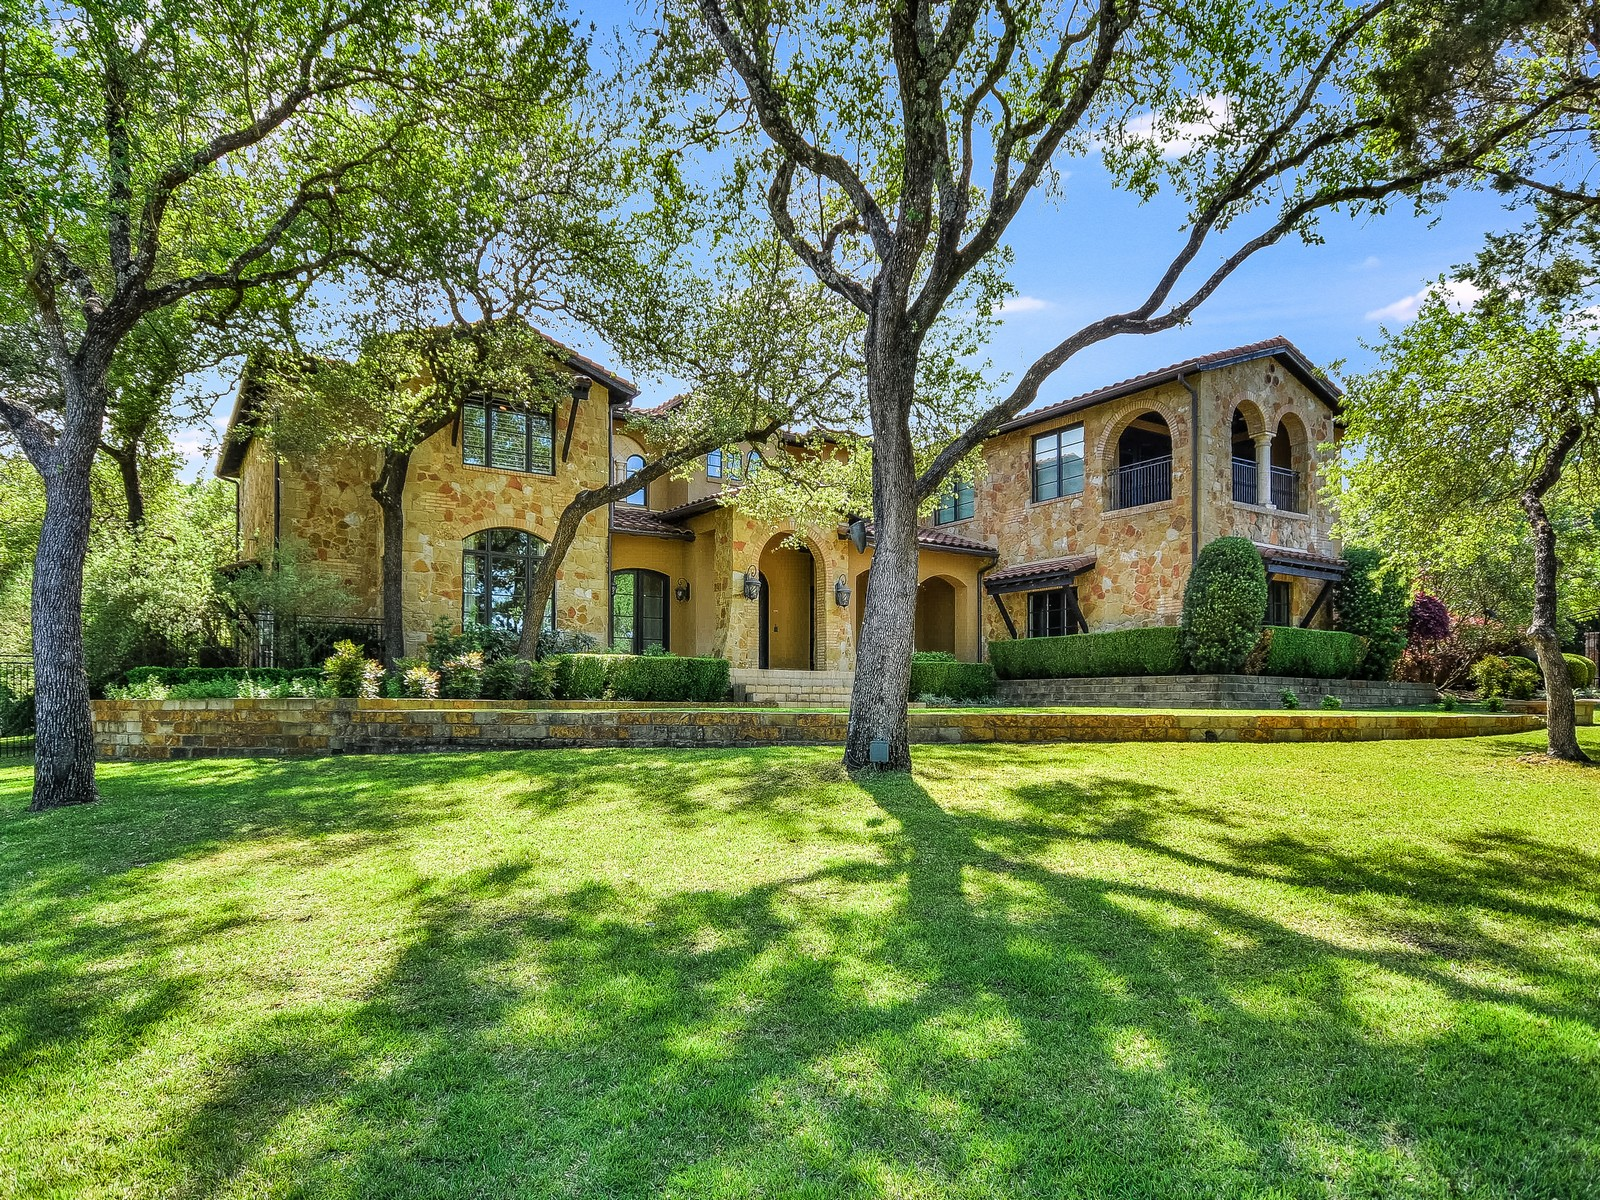 Single Family Home for Sale at Private Westlake Hills Estate on Over an Acre 377 Cortona Dr Austin, Texas 78746 United States